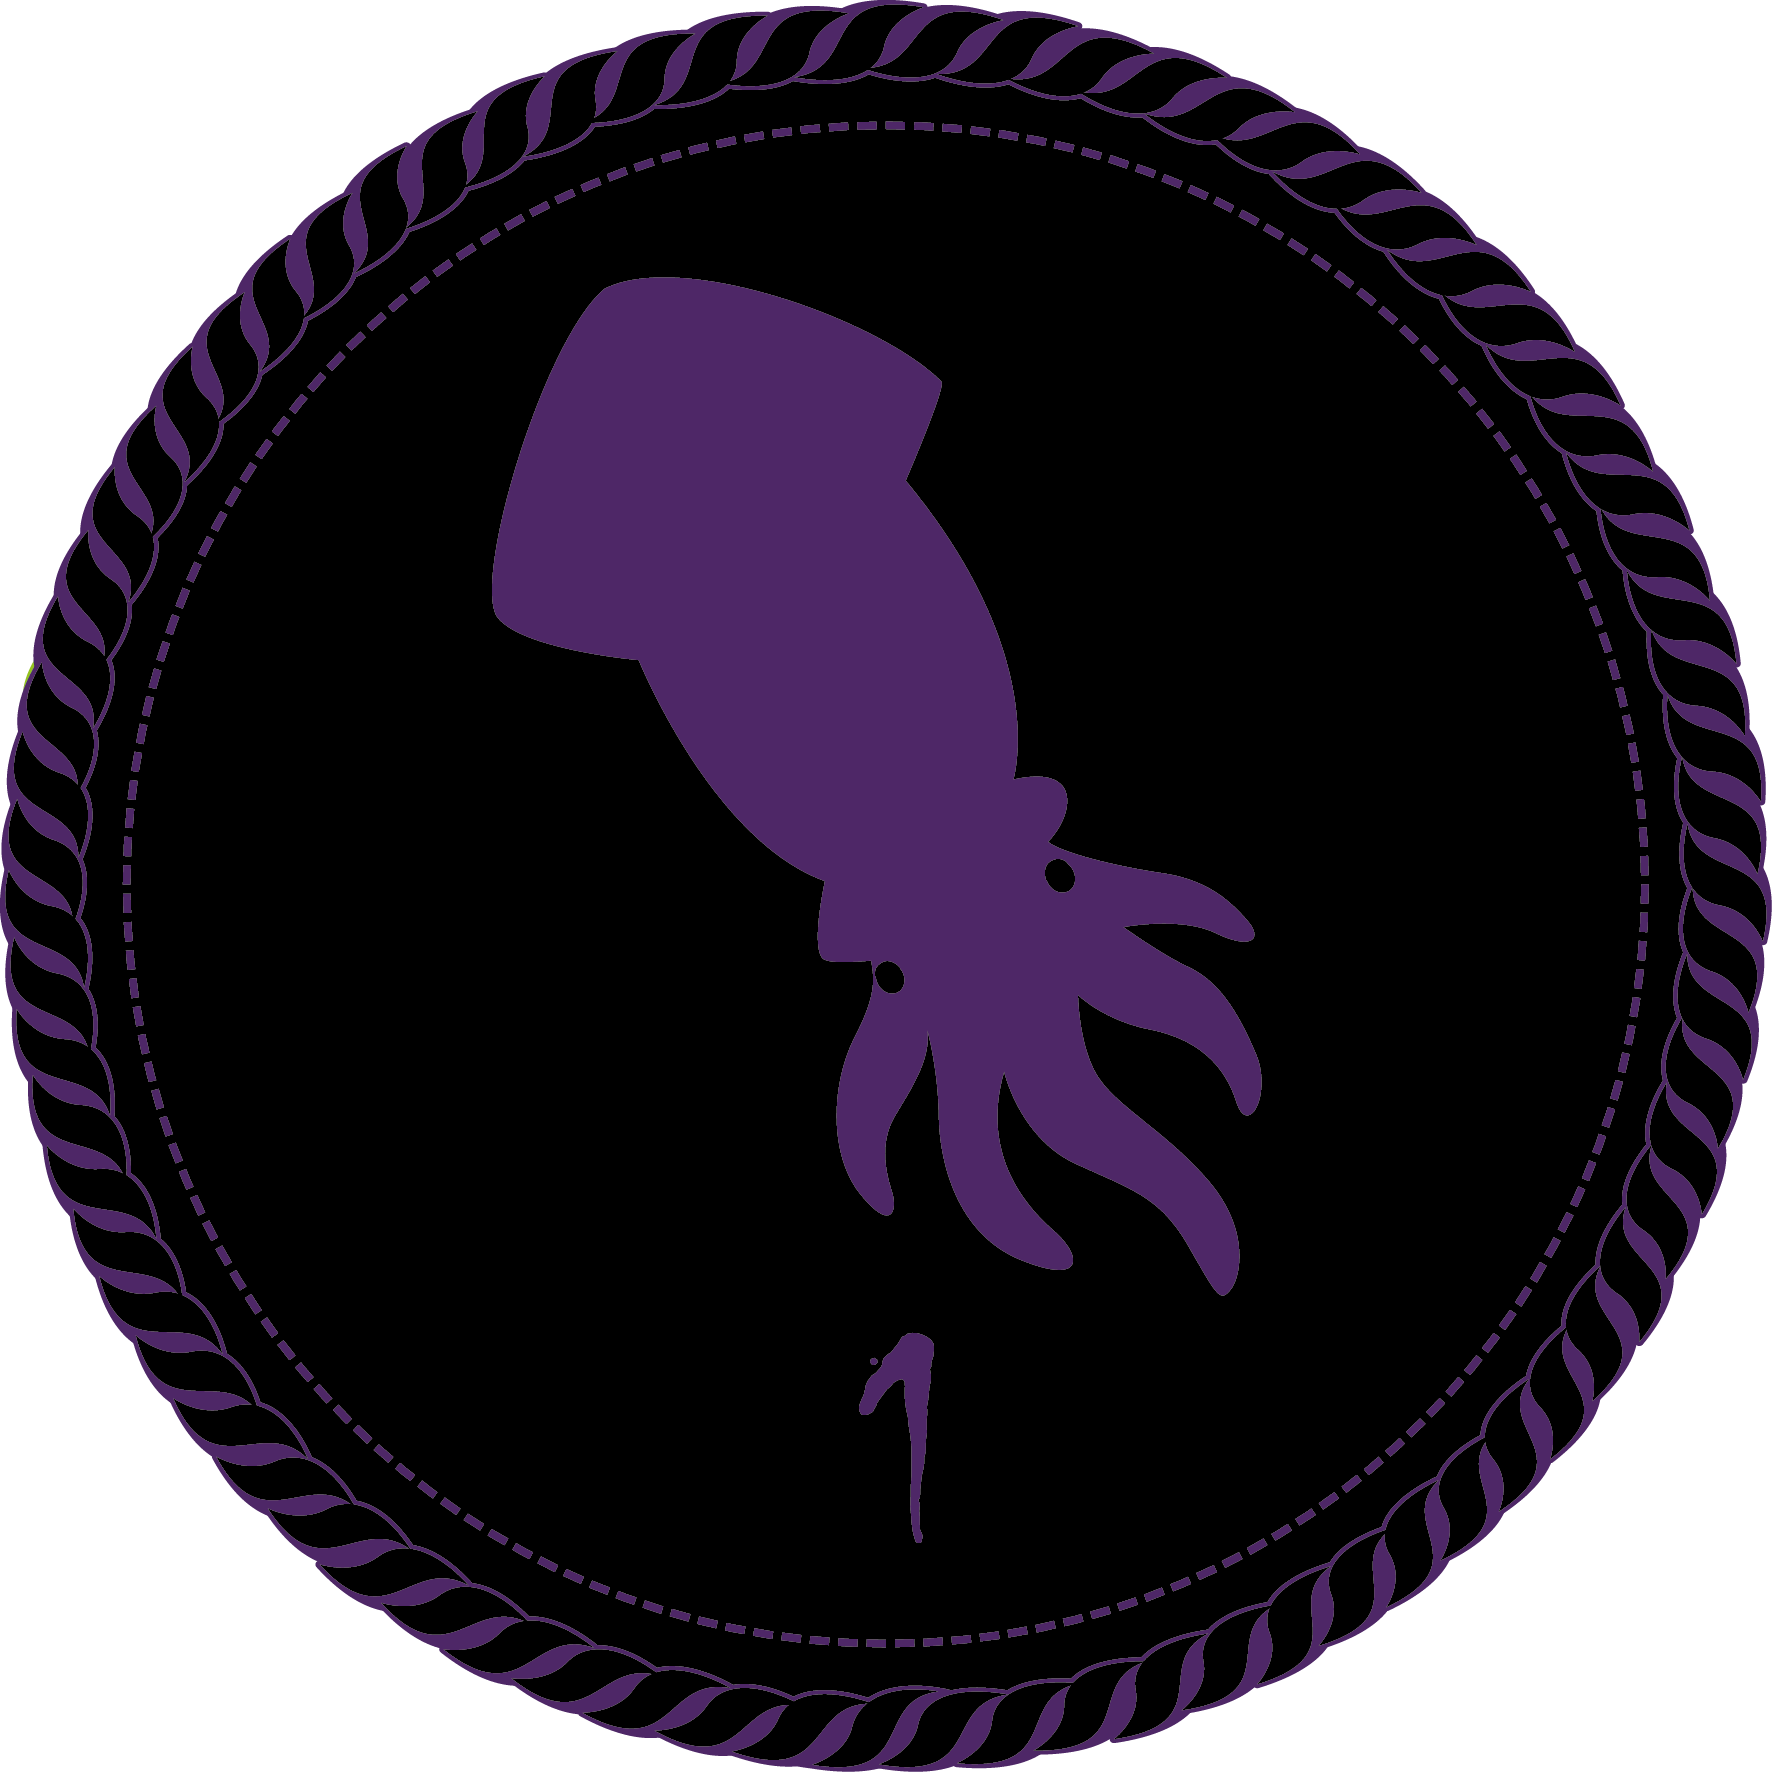 A black camp merit badge with a purple squid and a numeral 1